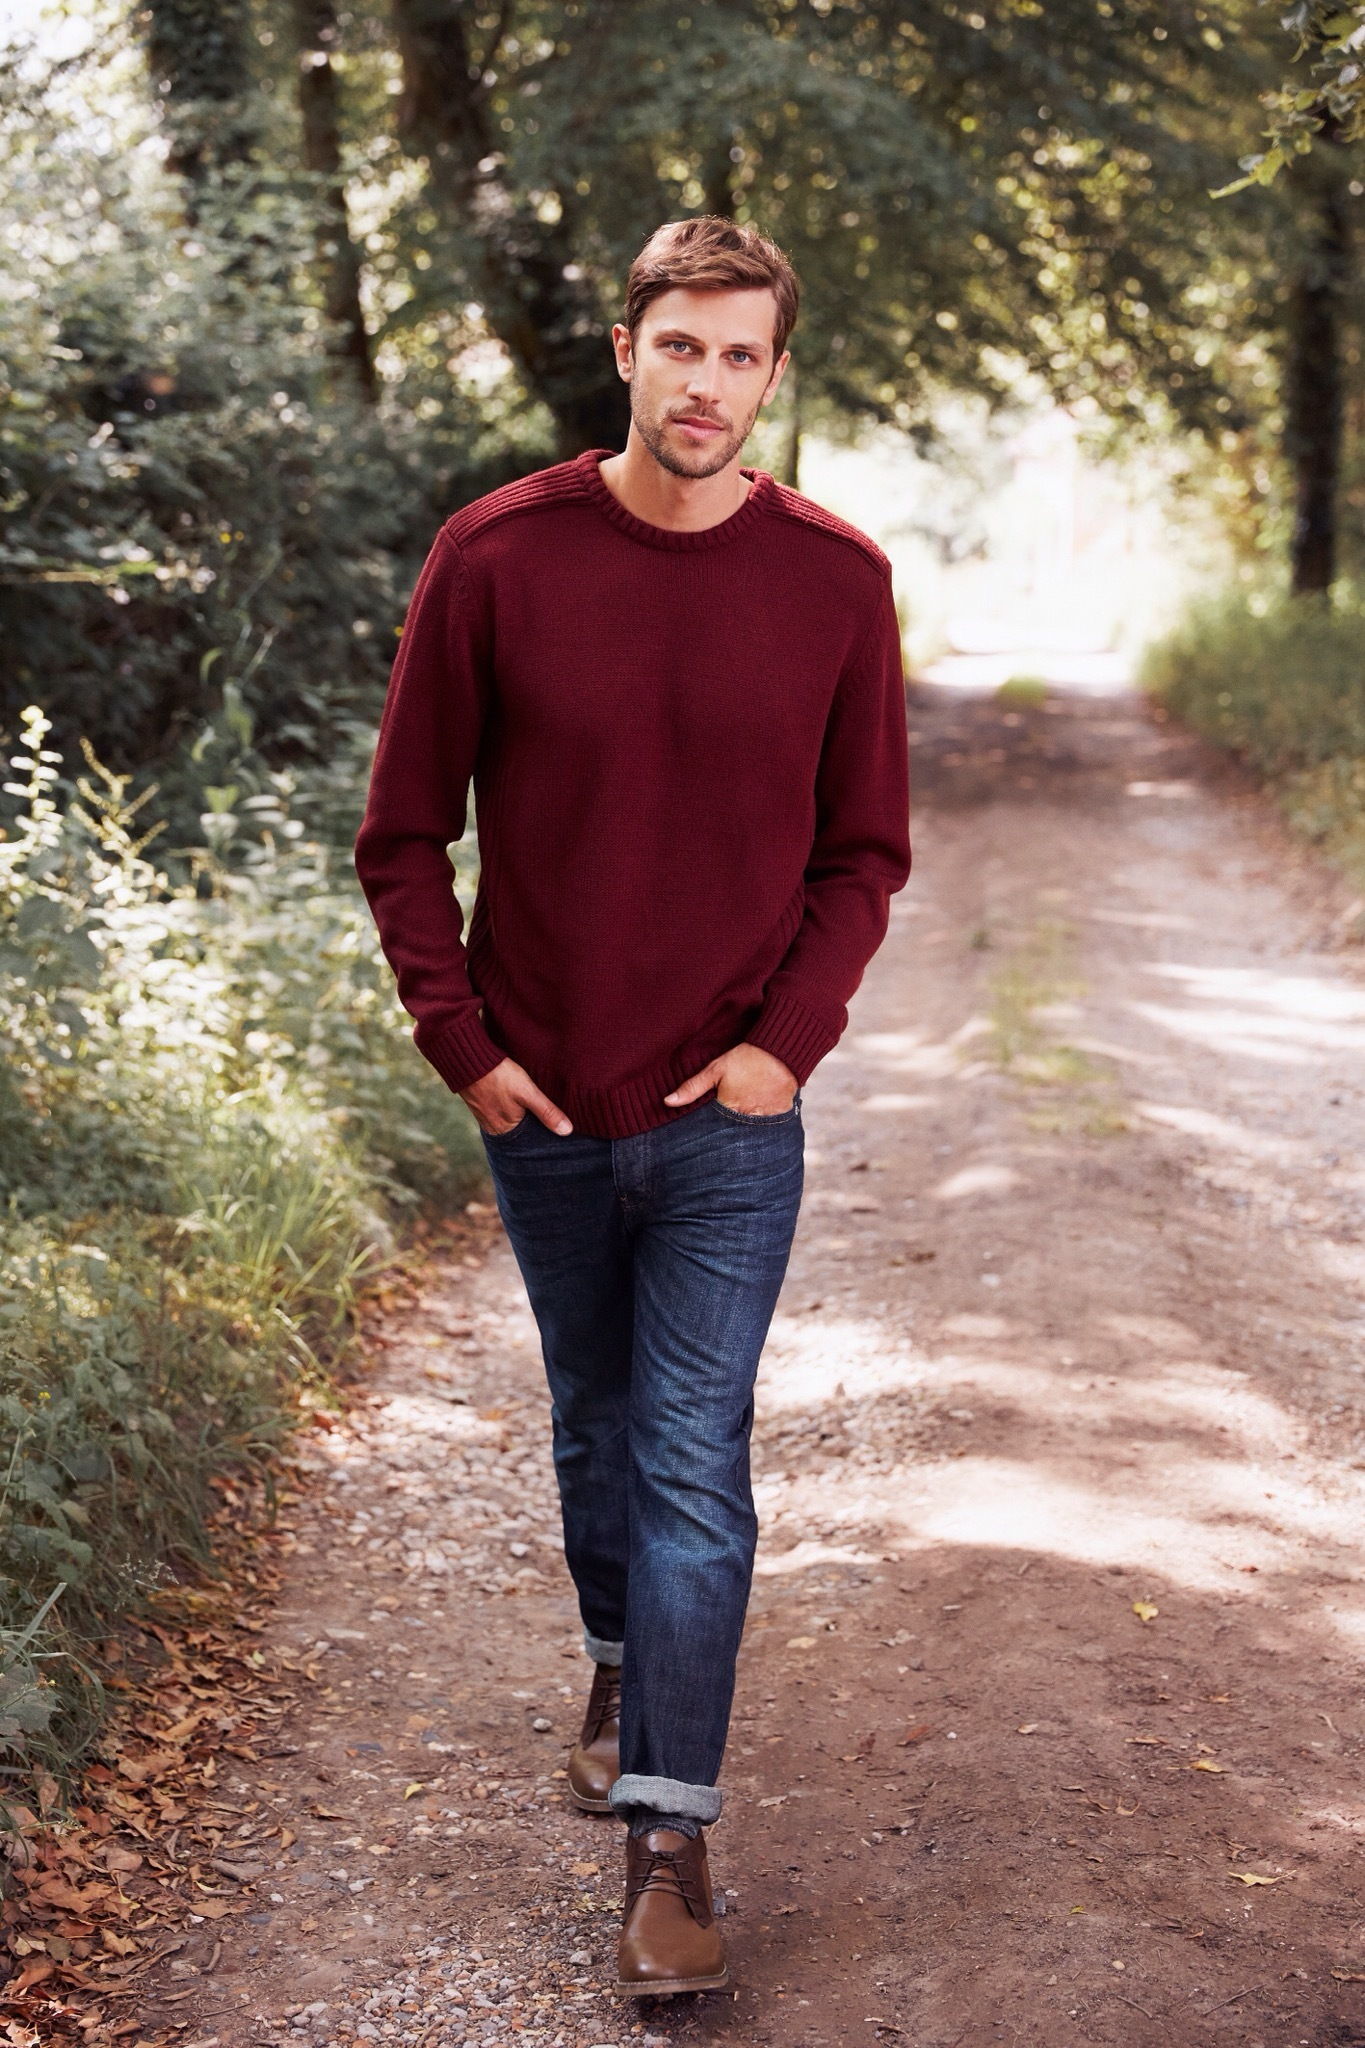 Men's Burgundy Crew-neck Sweater, Navy Jeans, Brown Leather Desert ...